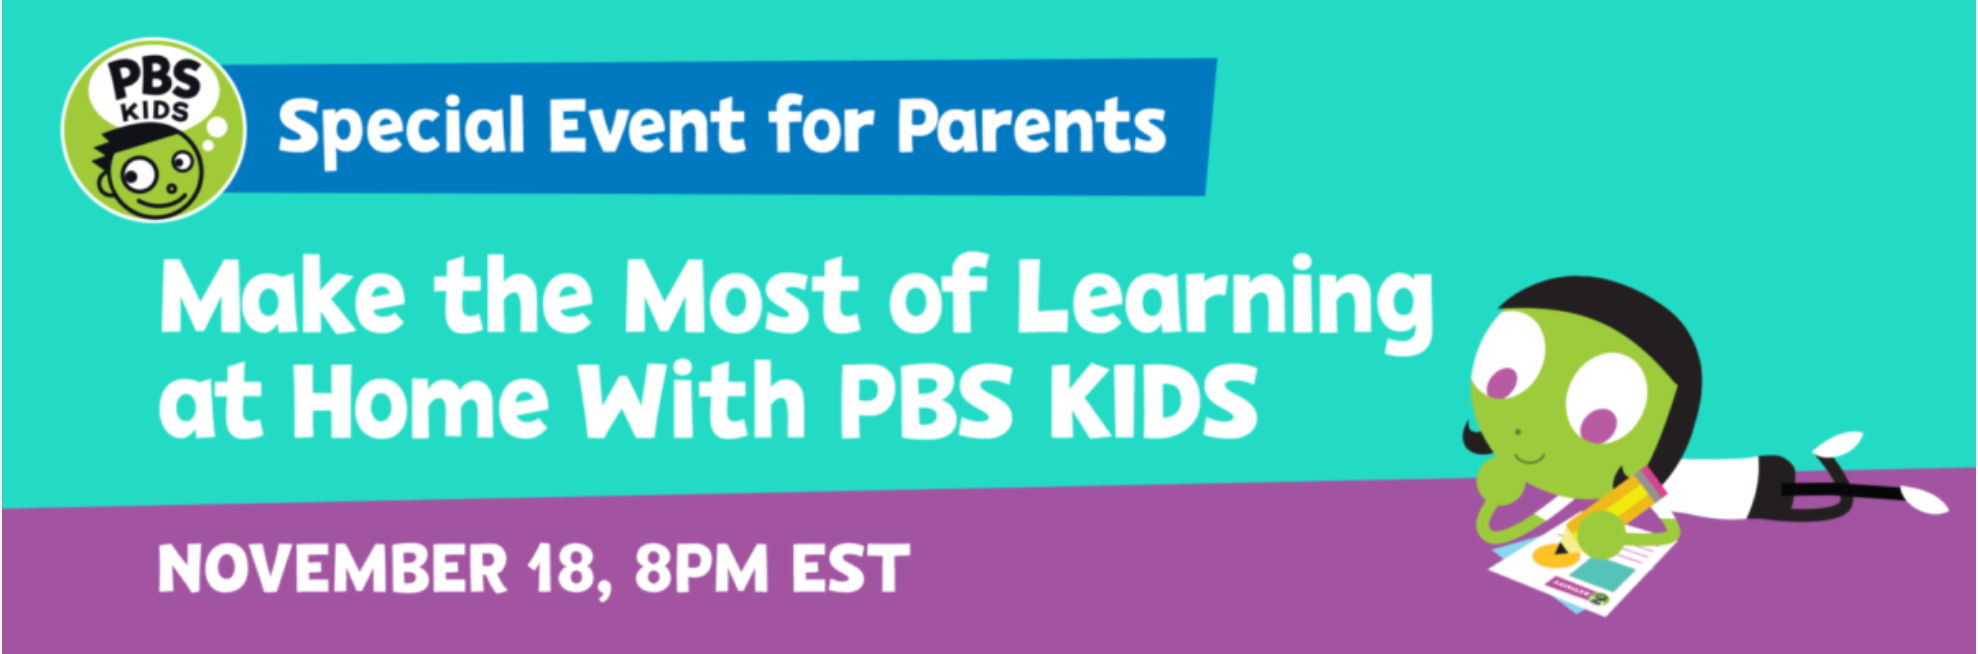 Make the most of learning at home with PBS Kids